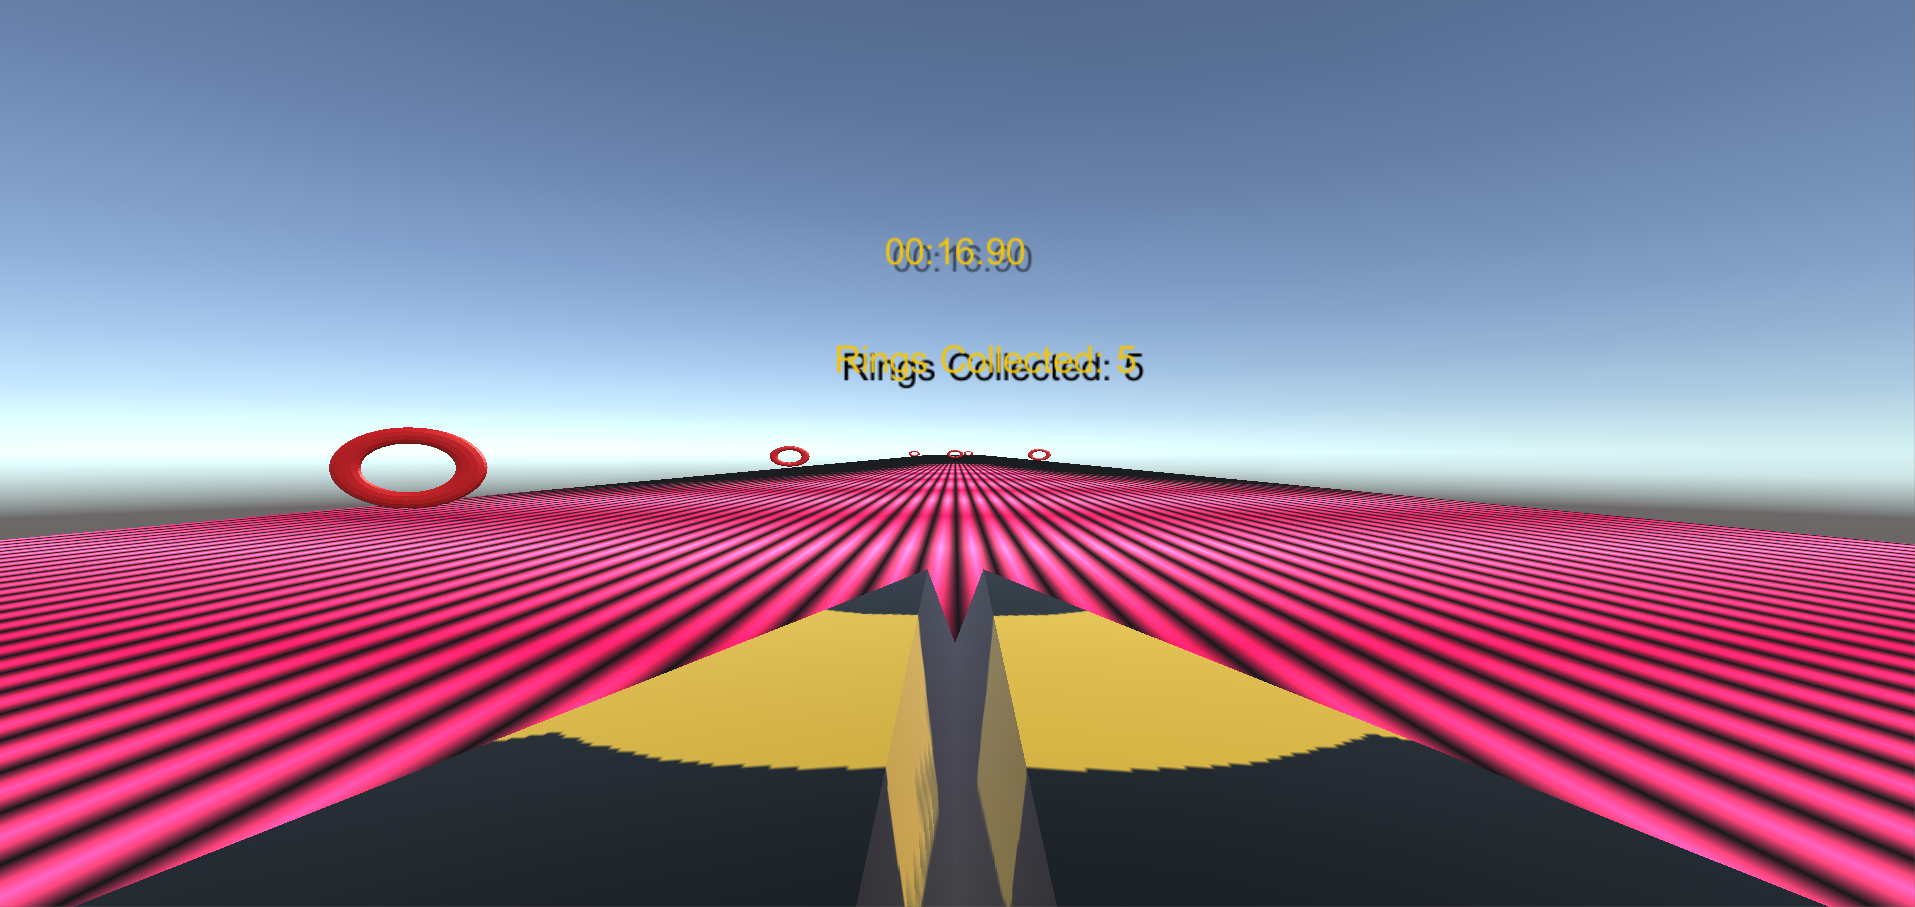 Paper Planes - Comp Soc Game Jam 2016